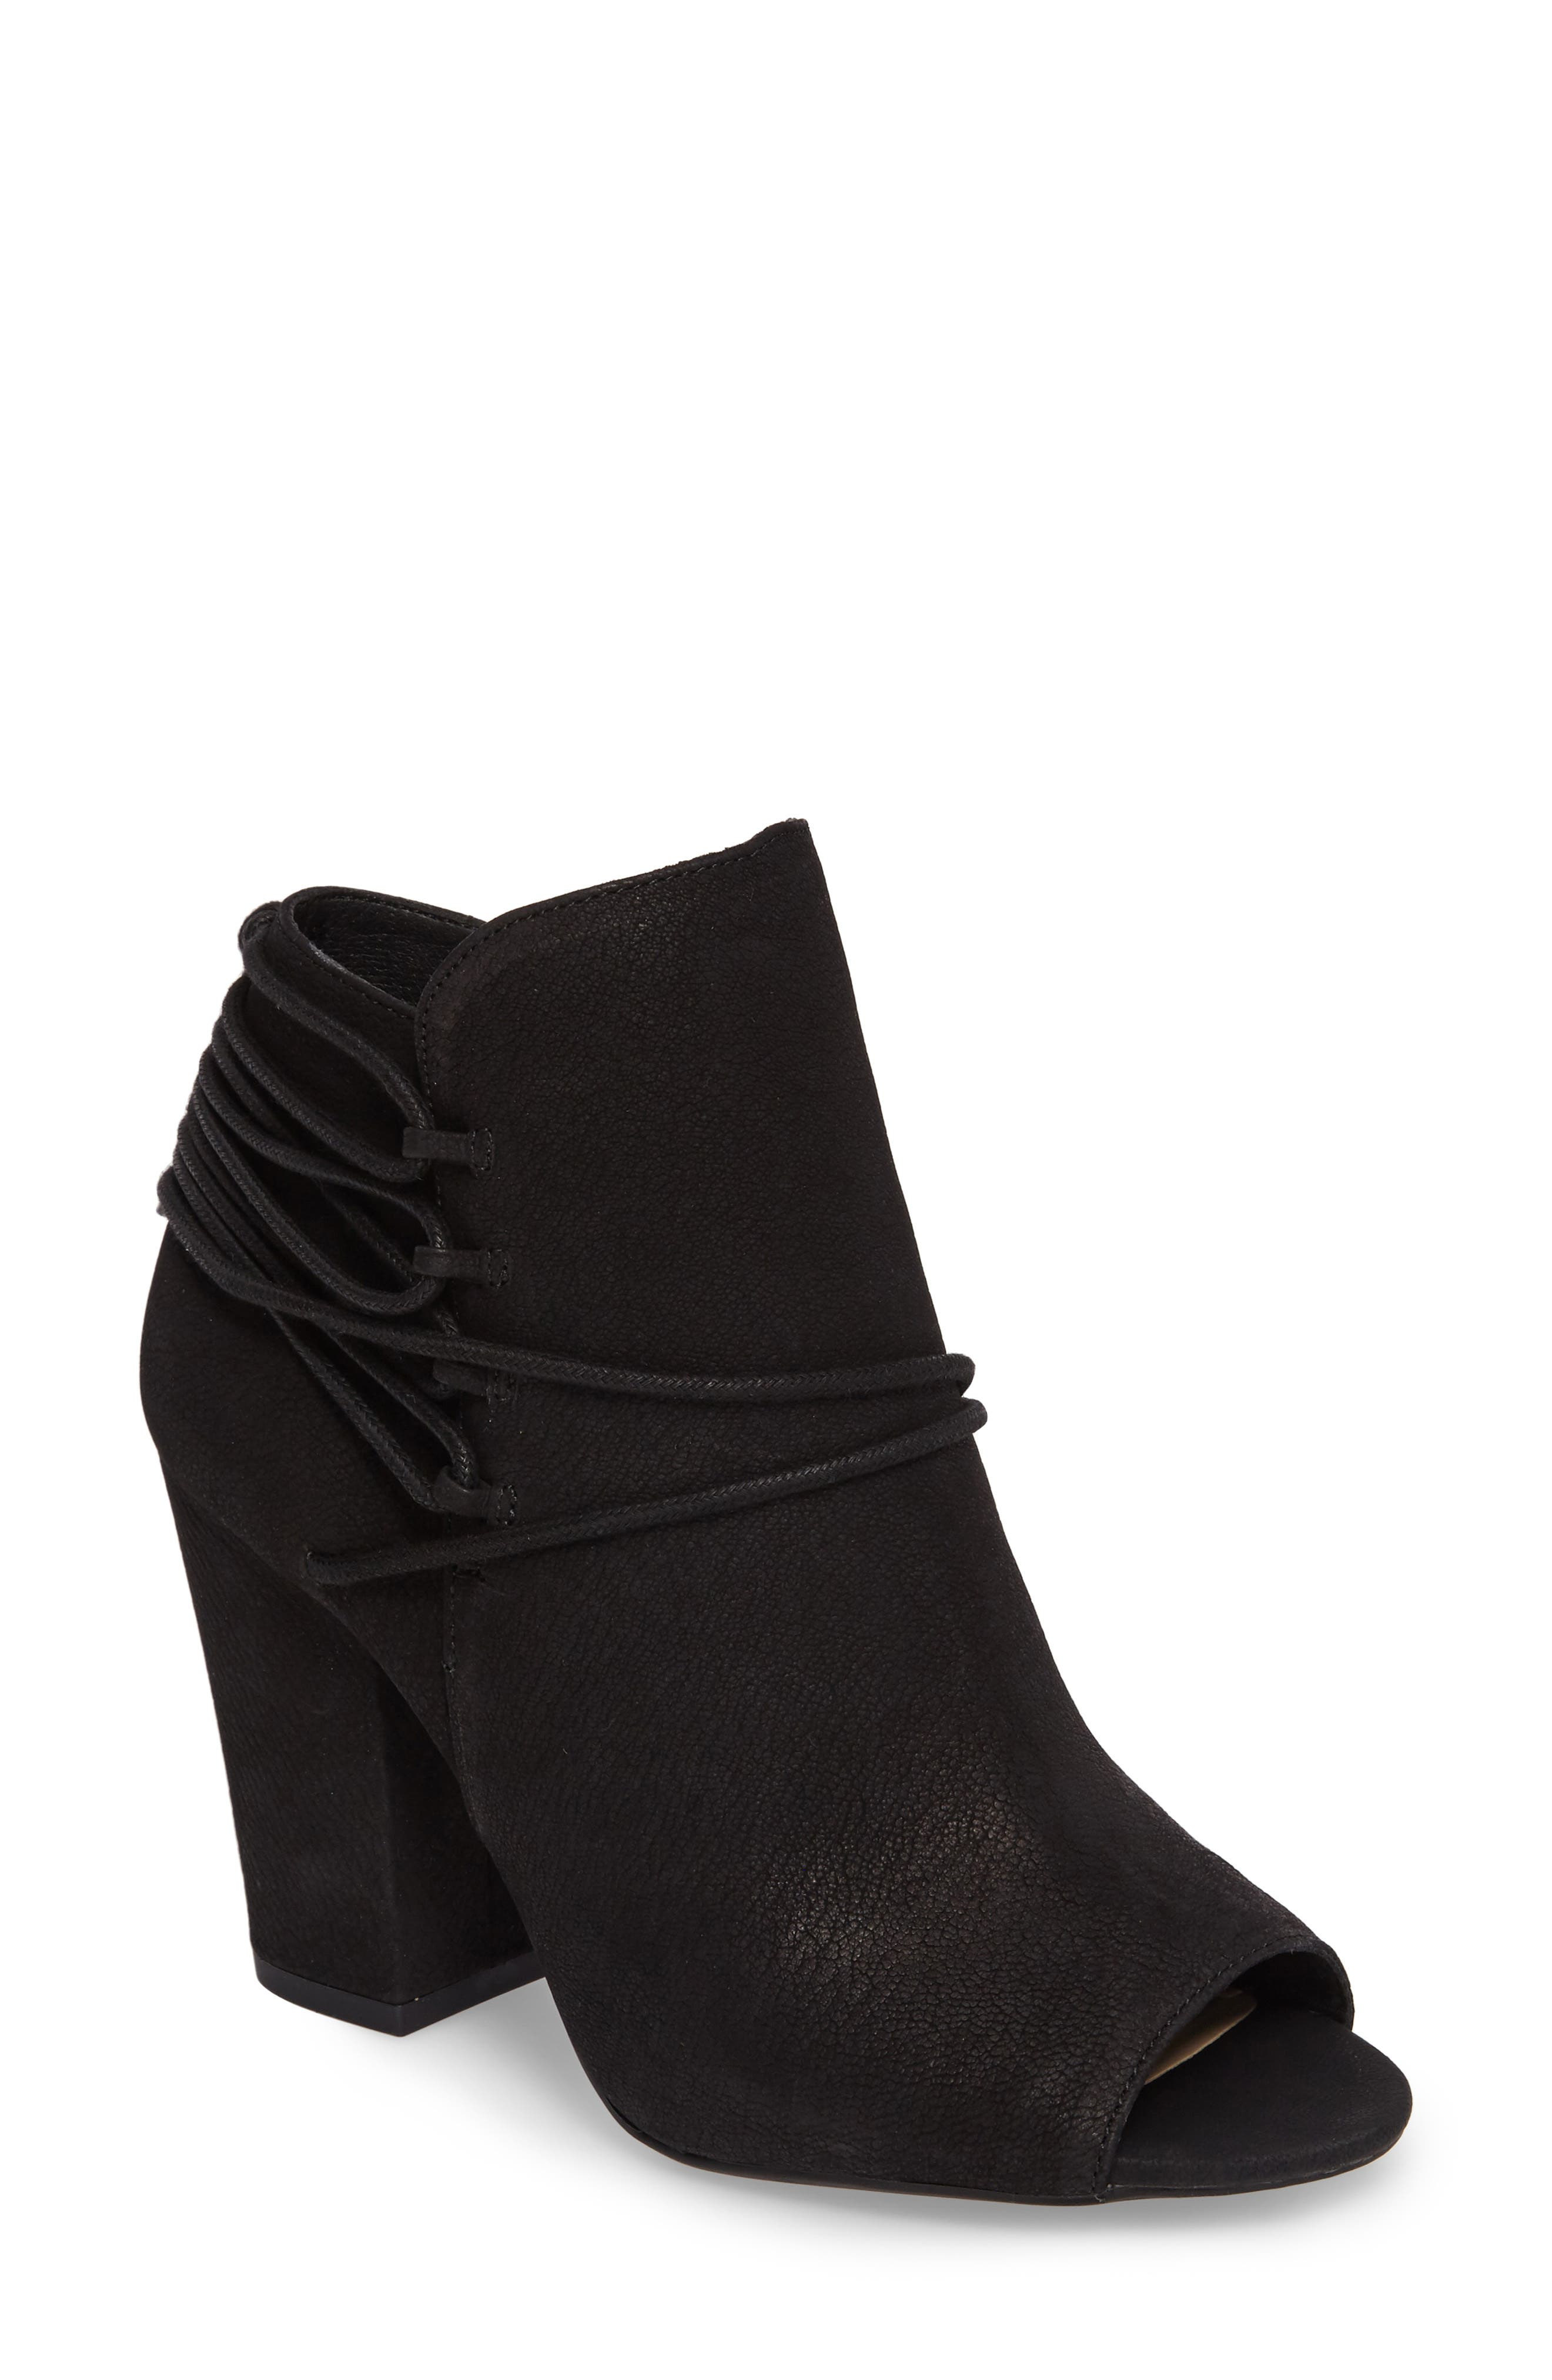 Remni Peep Toe Bootie,                             Main thumbnail 1, color,                             001